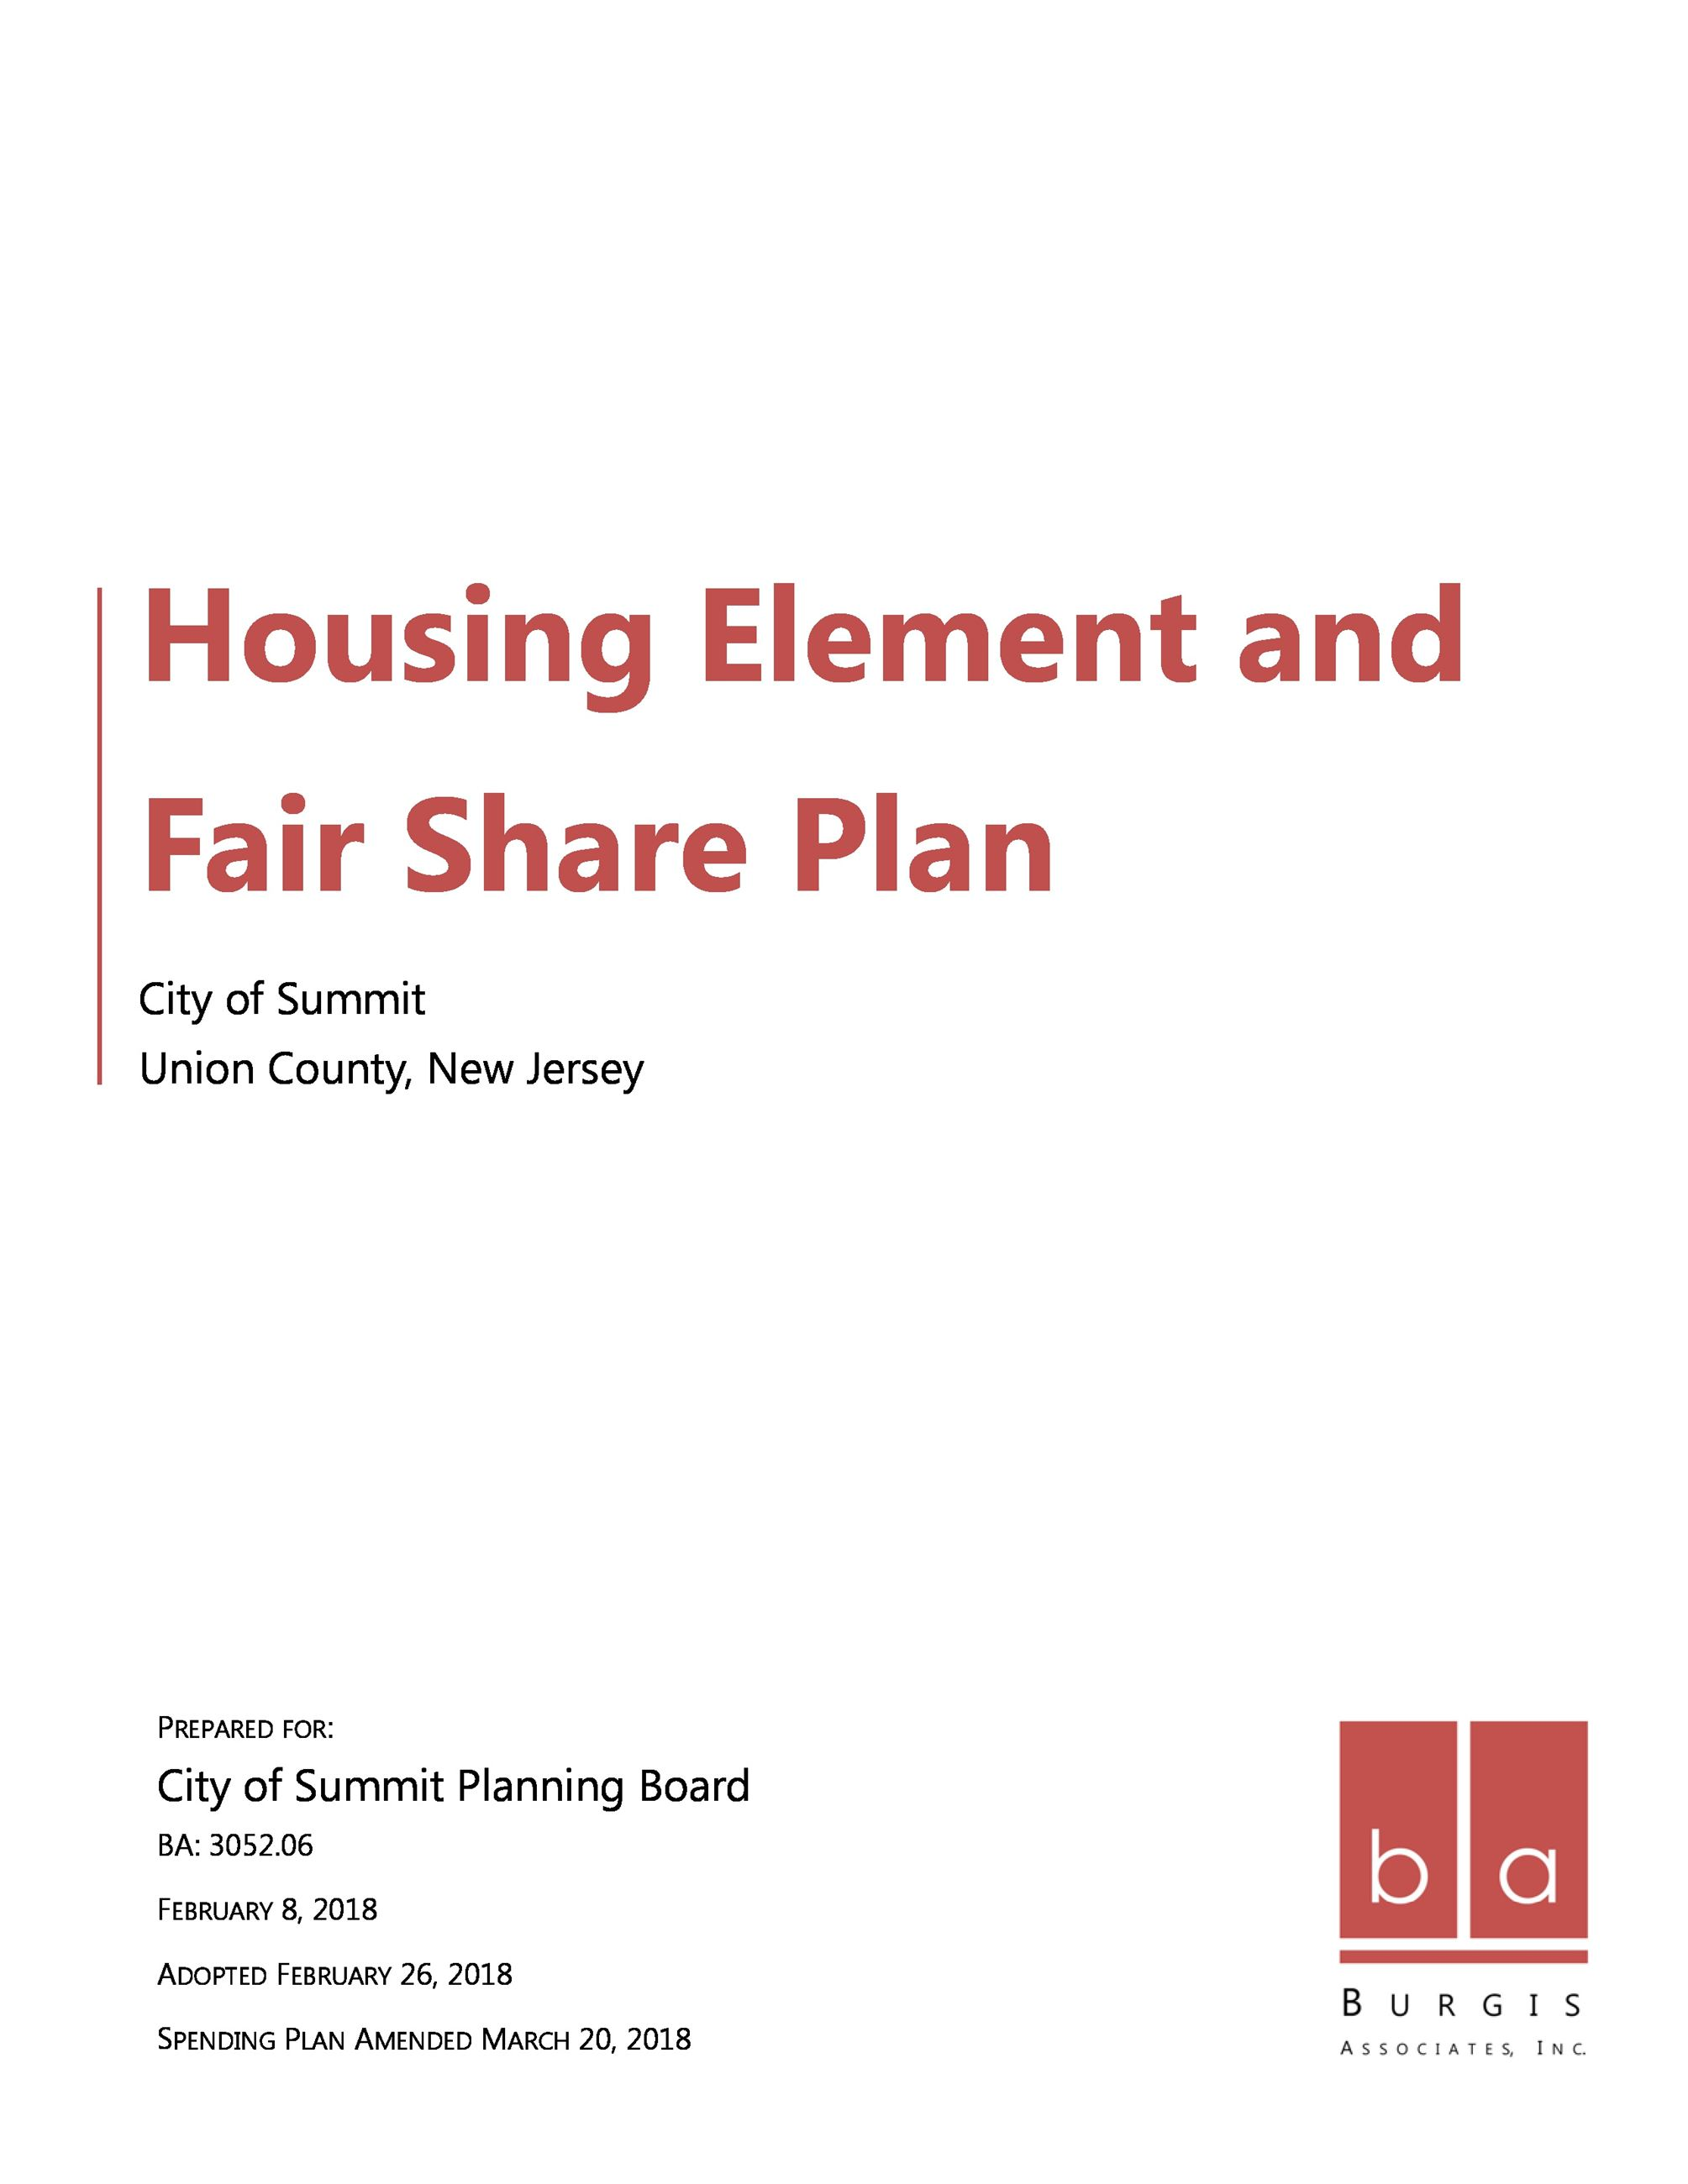 Summit Housing Element & Spending Plan